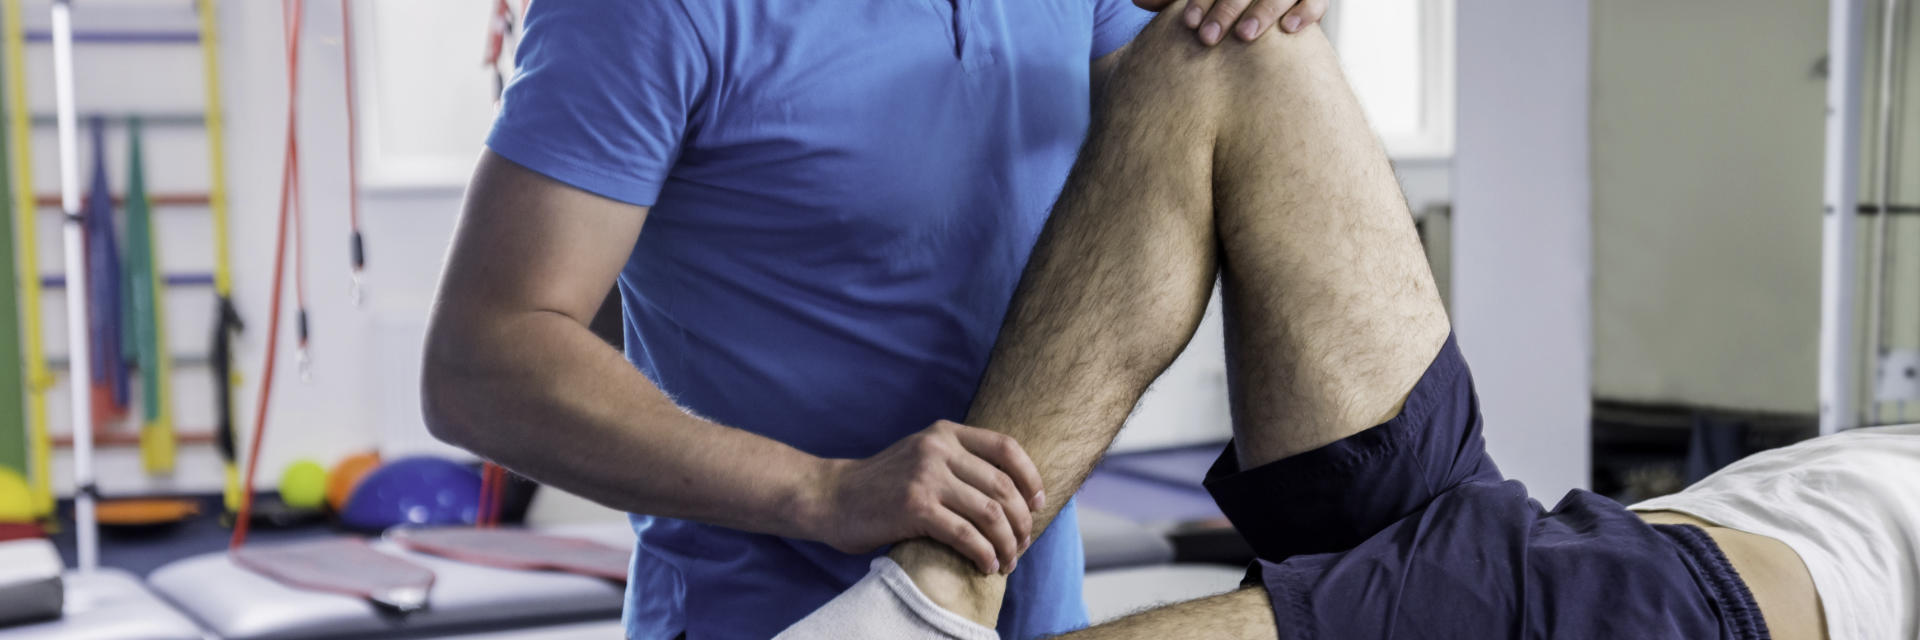 A physiotherapist examining patient's knee joint.